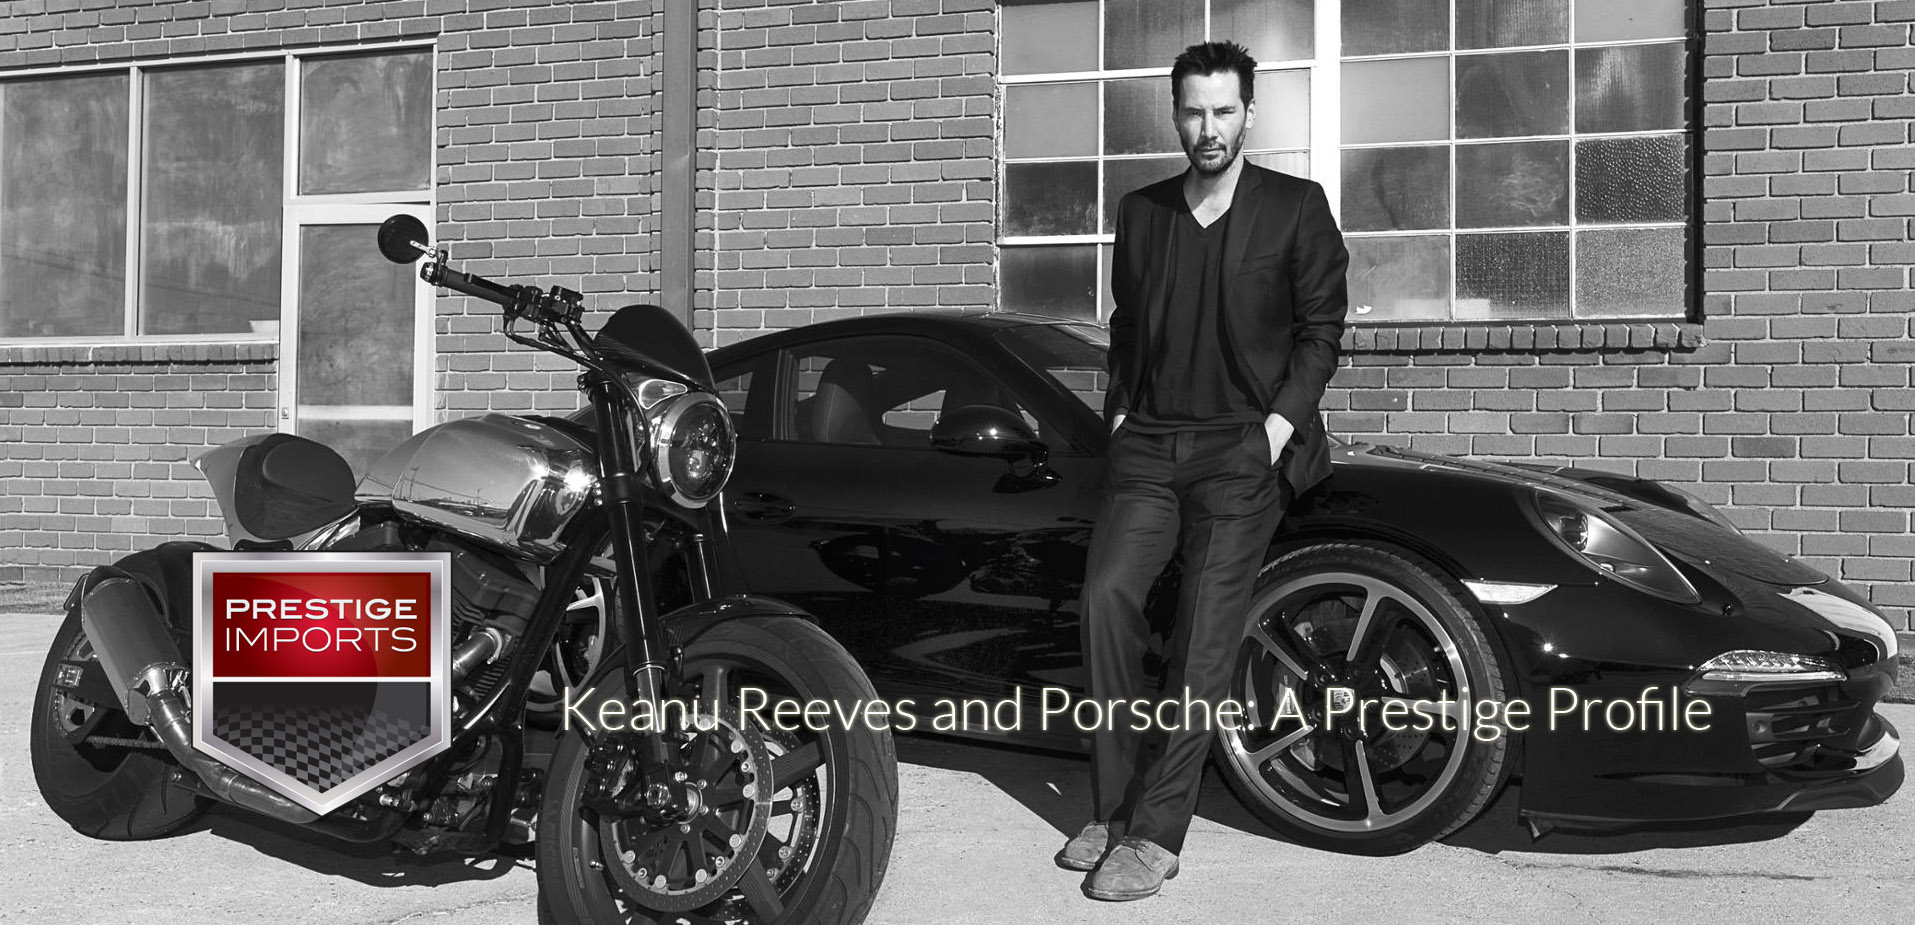 Black and white photo of Keanu Reeves and his Porsche 991